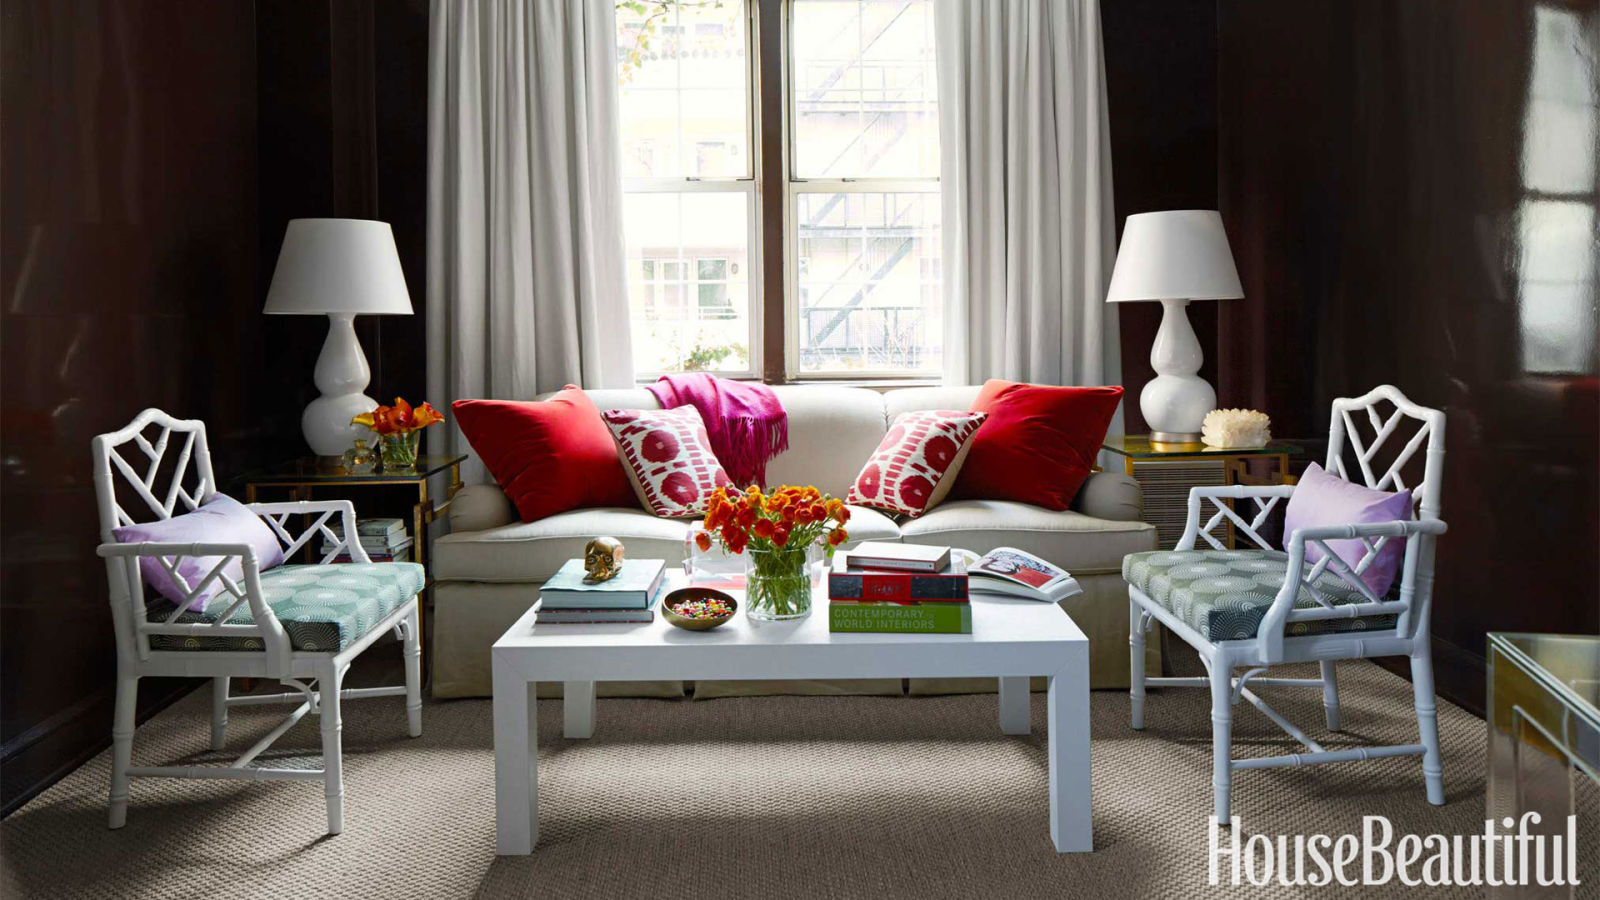 12 Picturesque Small Living Room Design: 20-Something Manhattan Apartment